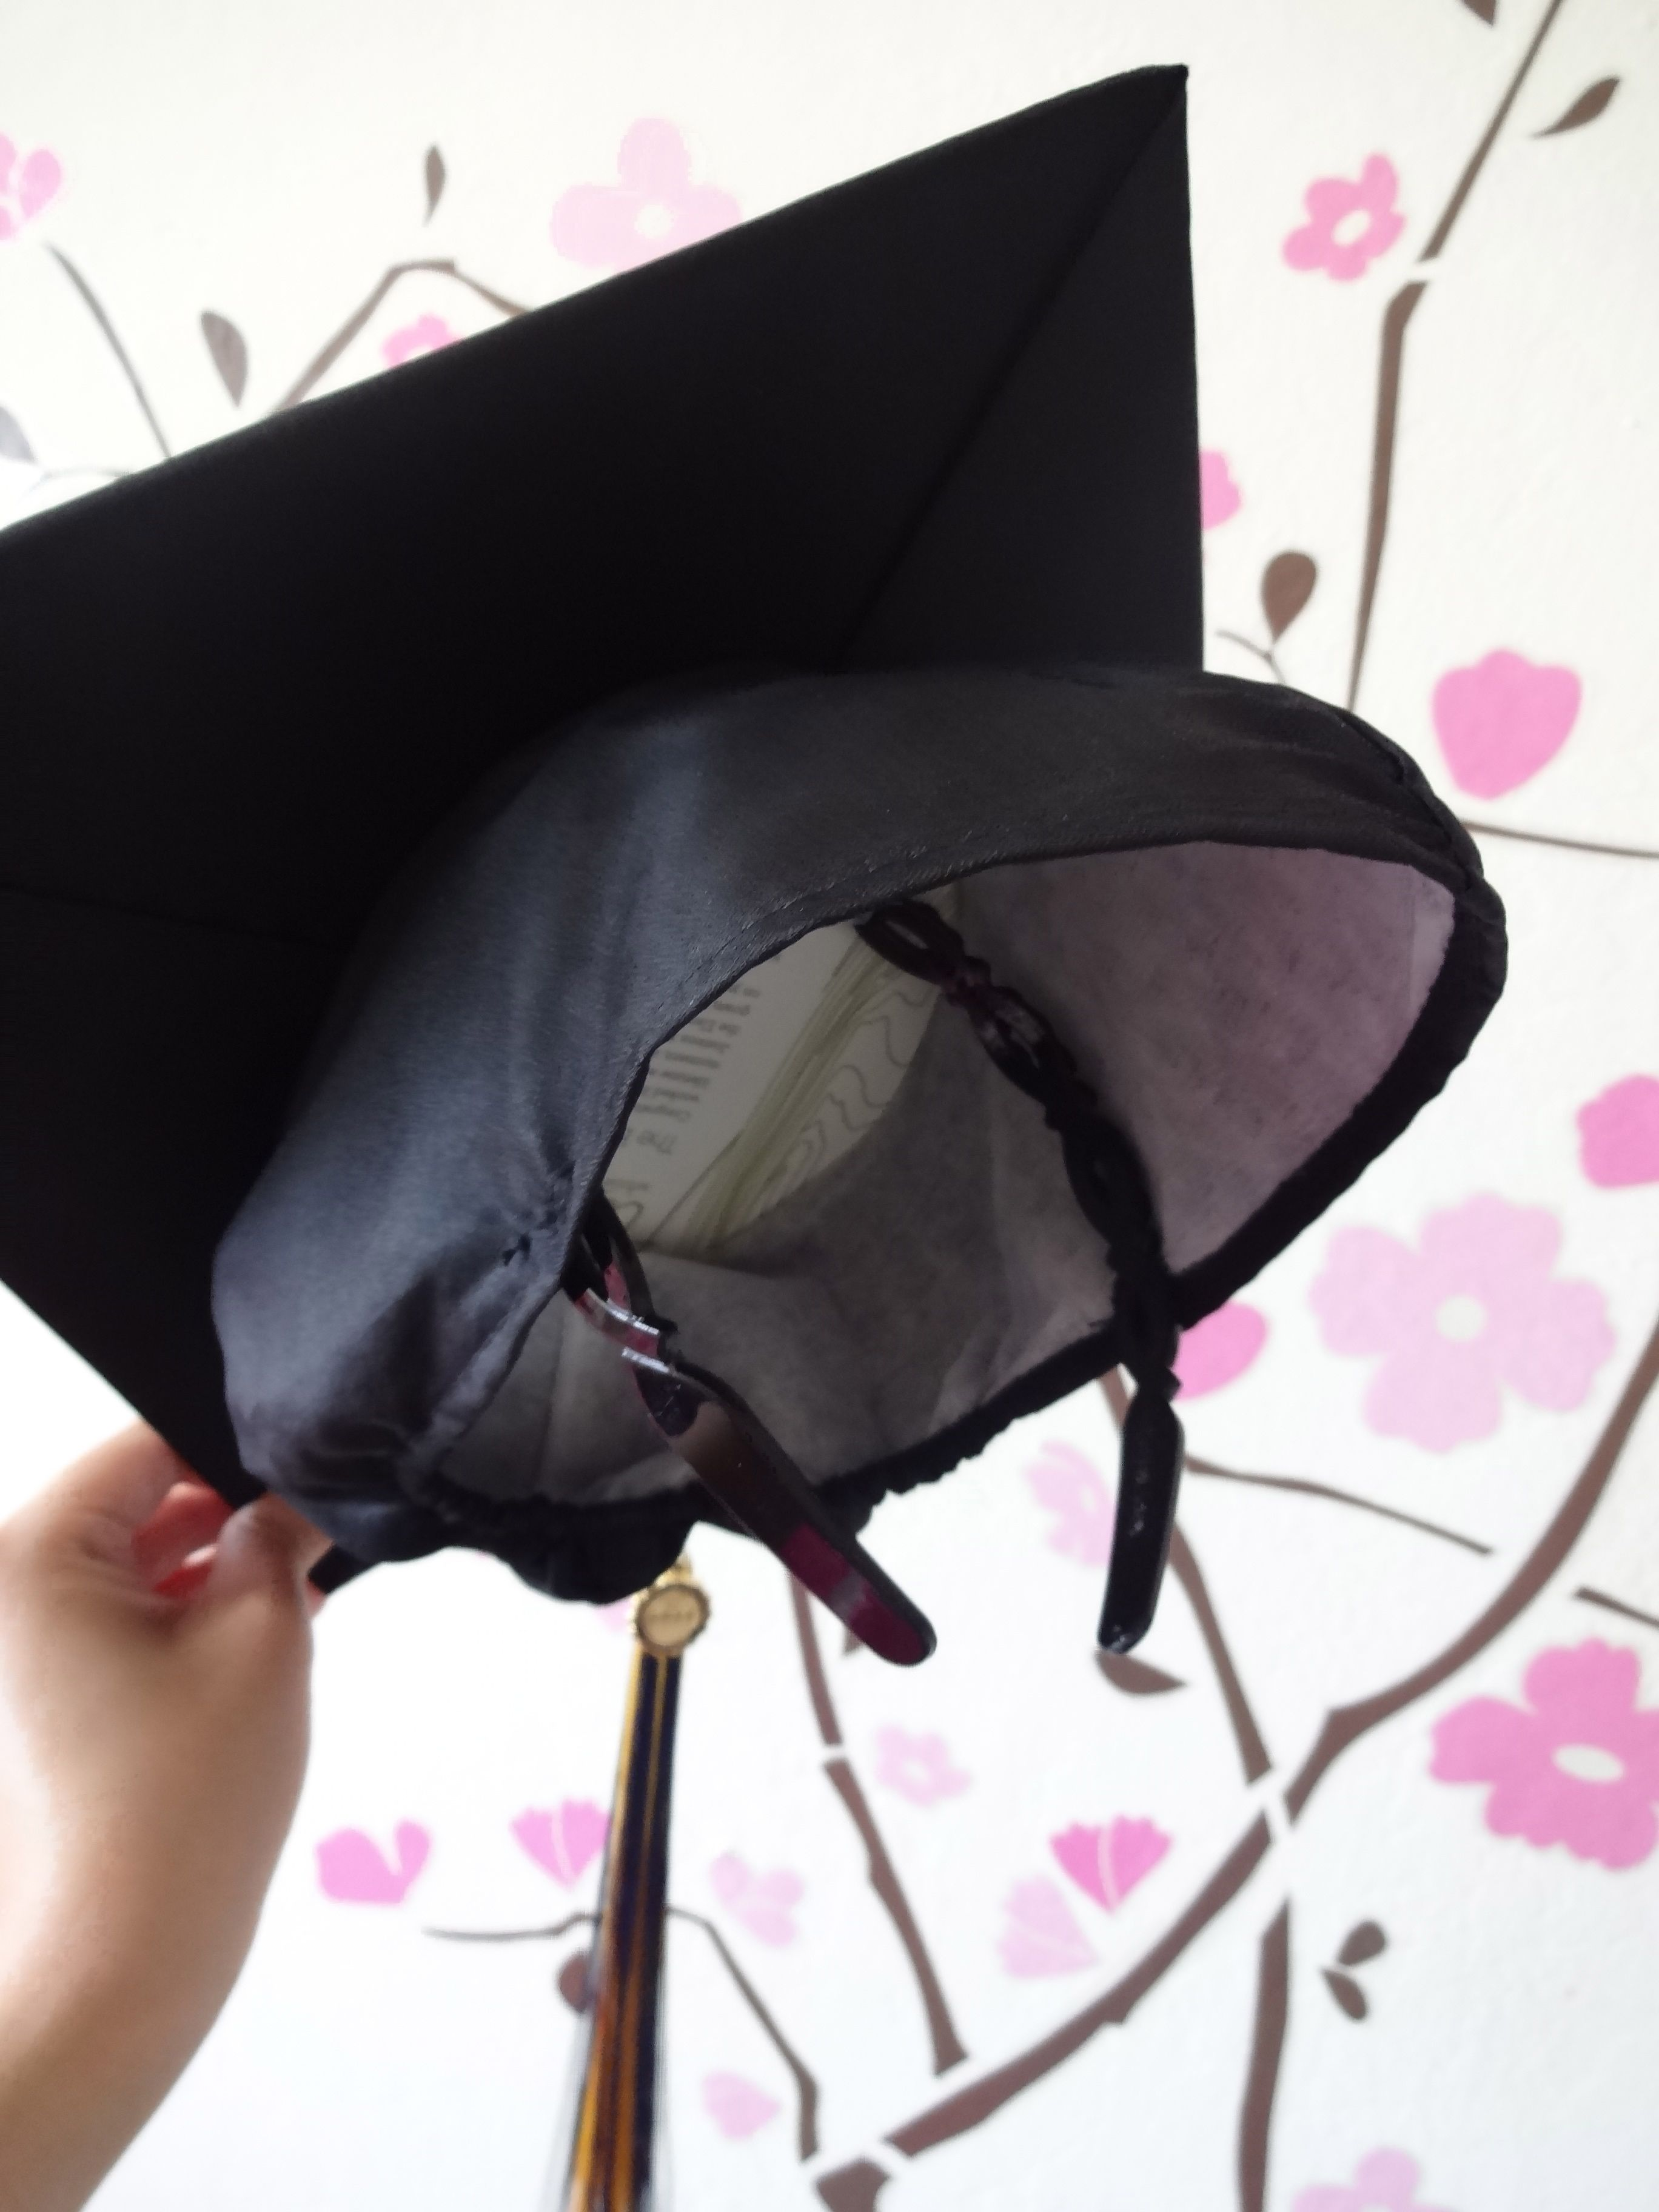 how to decorate graduation cap is that simple. A Simple Solution To Keep Your Graduation Cap From Falling Off \u2013 Tape Or Sew On Headband!! #graduation How Decorate Is That